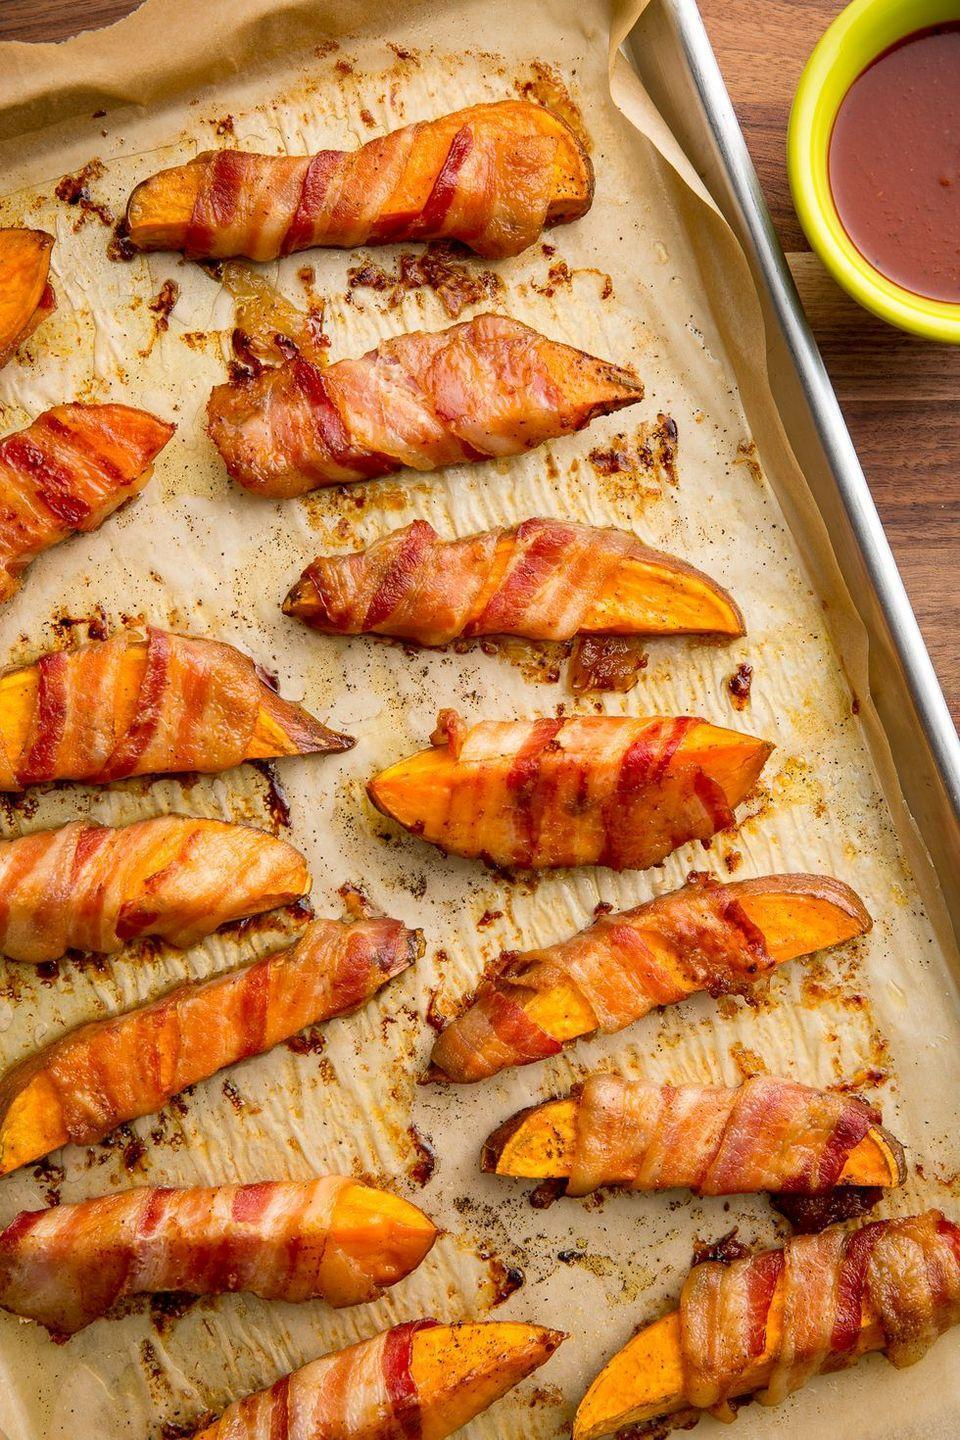 """<p>Regular fries, who? </p><p>Get the <a href=""""https://www.delish.com/uk/cooking/recipes/a35547816/bacon-wrapped-sweet-potato-fries-recipe/"""" rel=""""nofollow noopener"""" target=""""_blank"""" data-ylk=""""slk:Bacon-Wrapped Sweet Potato Fries"""" class=""""link rapid-noclick-resp"""">Bacon-Wrapped Sweet Potato Fries</a> recipe.</p>"""